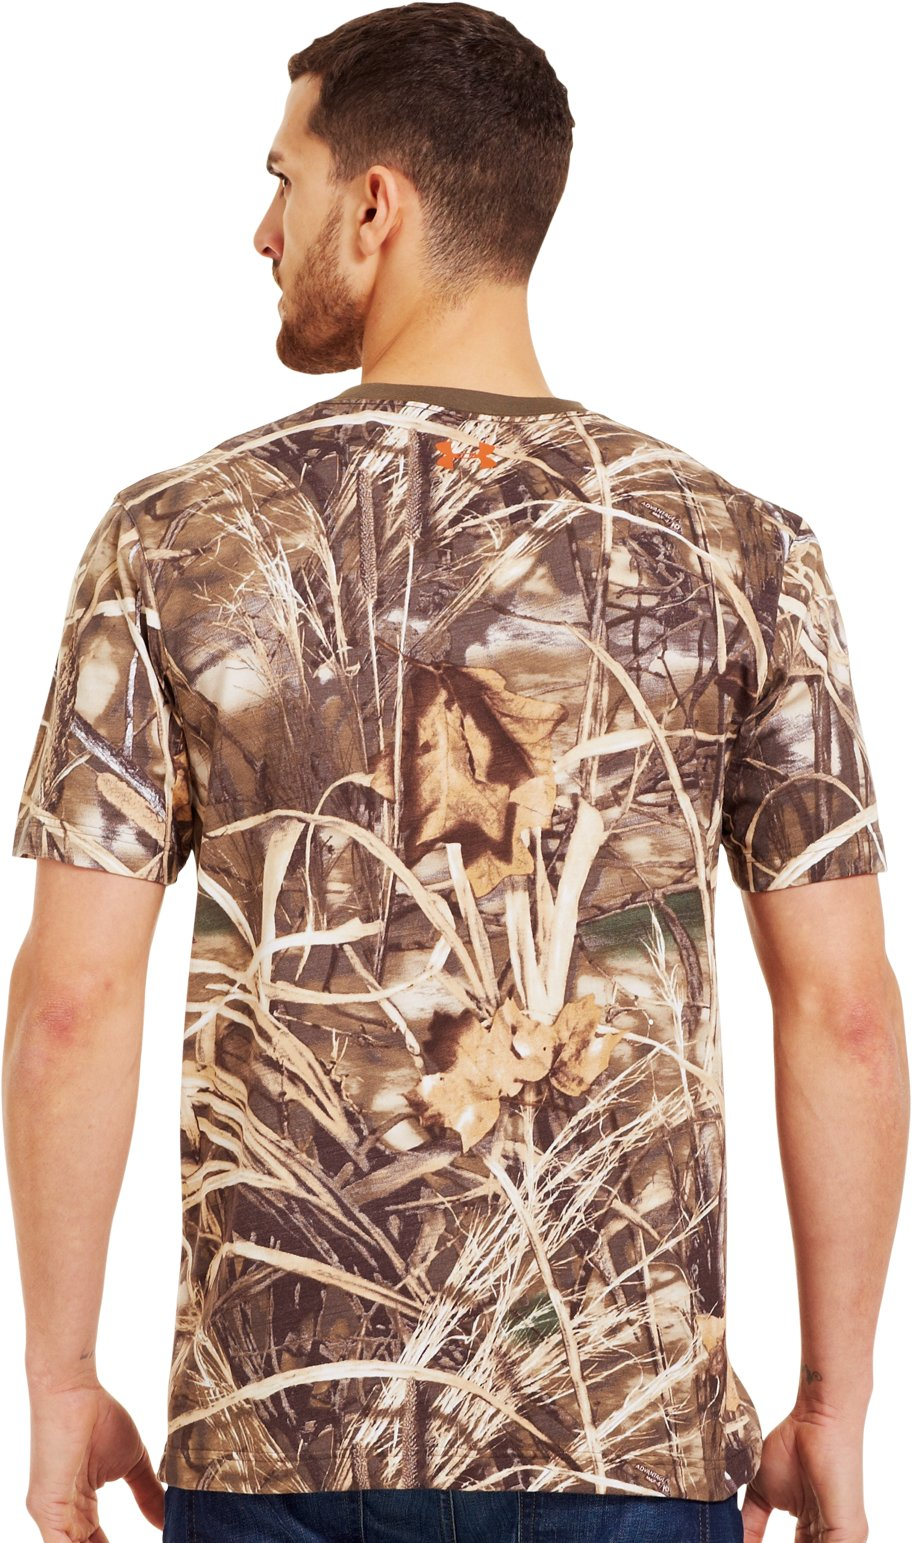 Men's Charged Cotton® Camo Short Sleeve T-Shirt, Realtree Max, Back